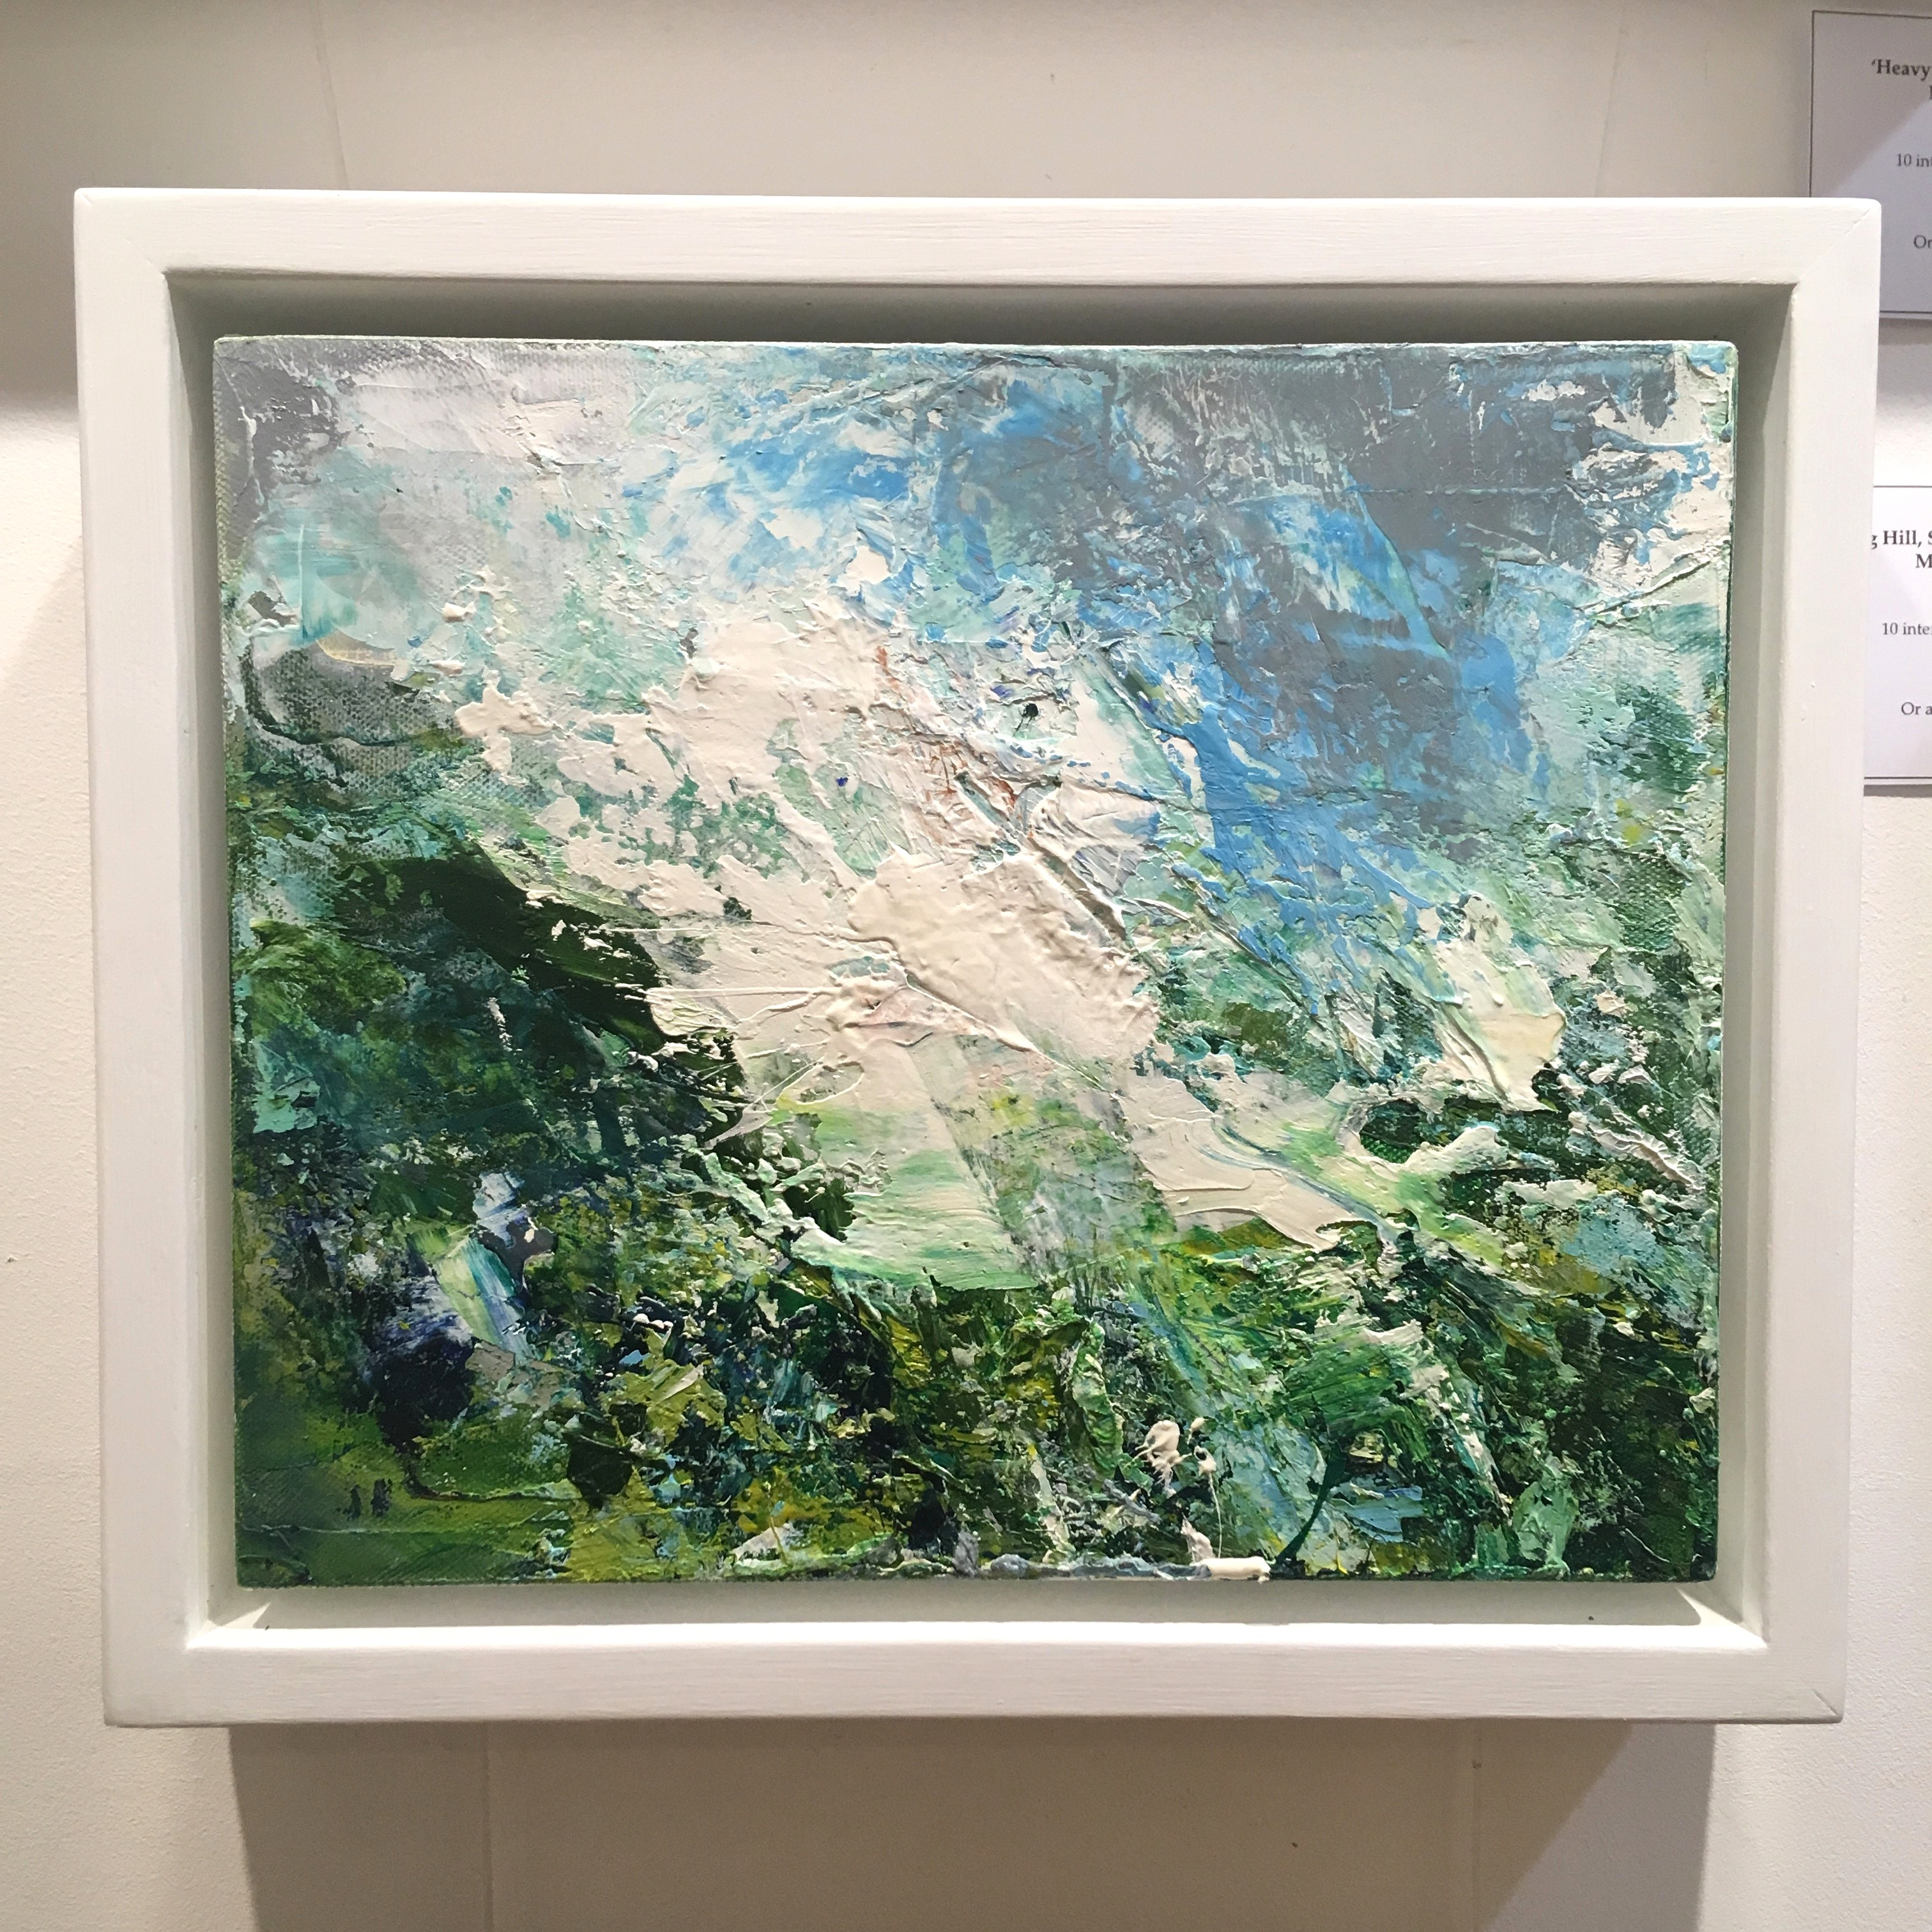 'Rolling Hill, Strong Wind, Wild Grasses' by artist Matthew Bourne